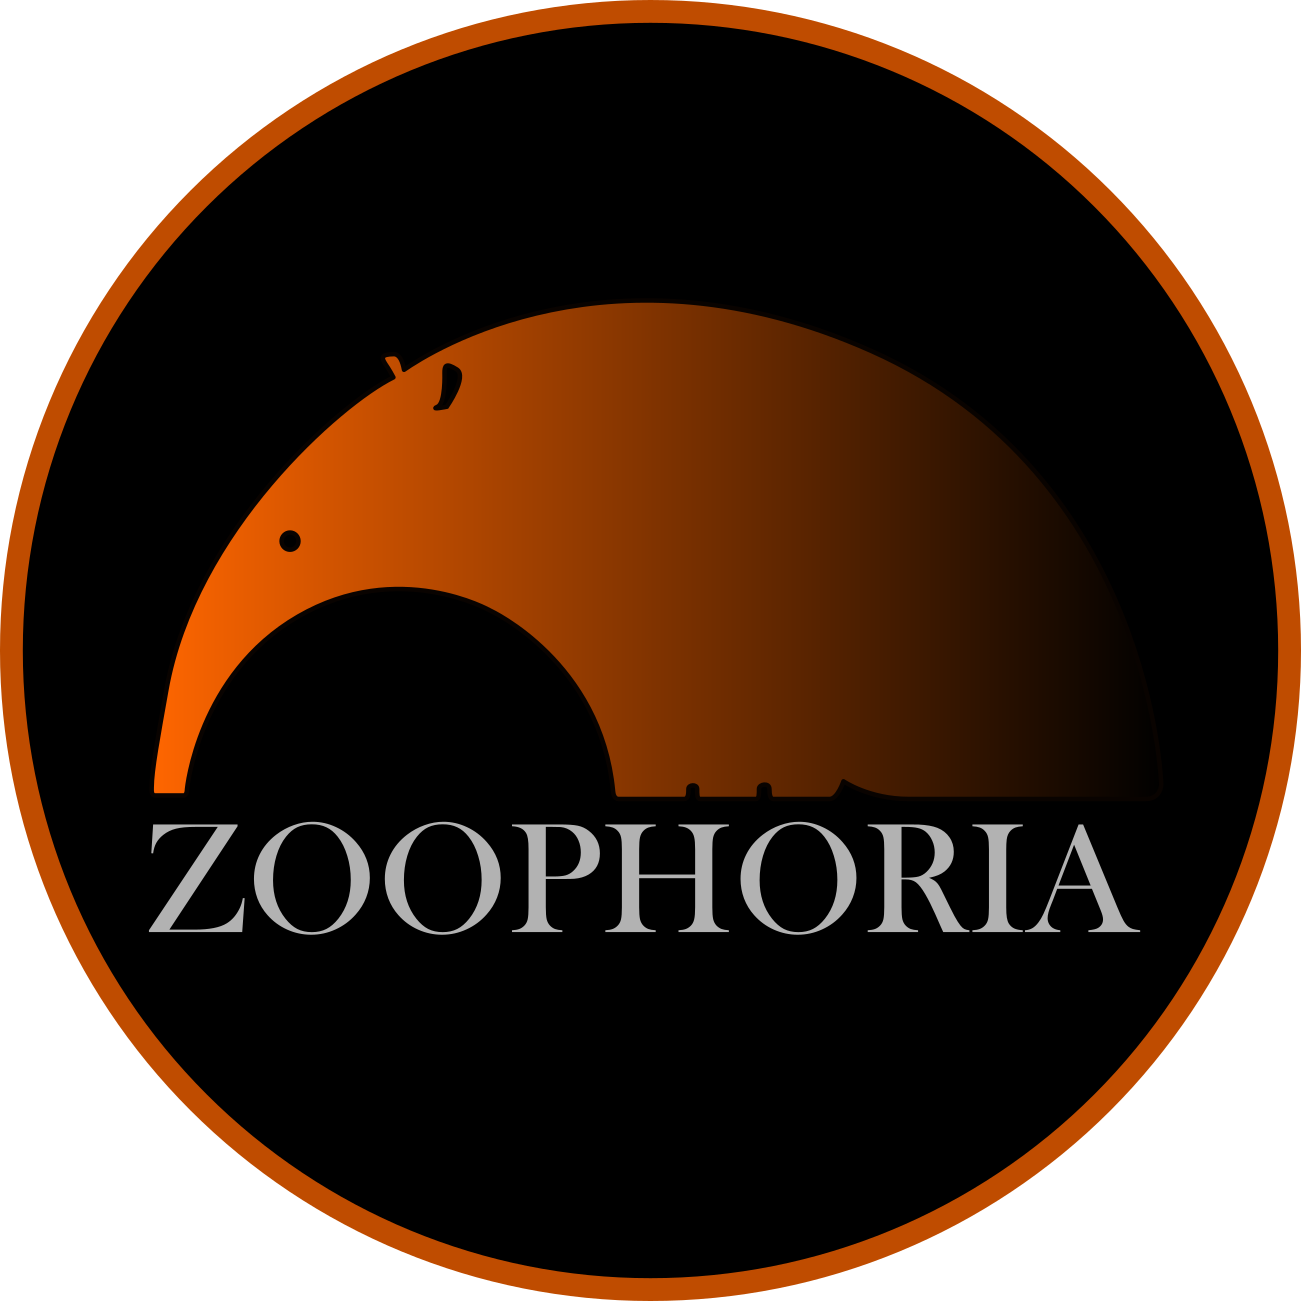 Zoophoria | Giftware inspired by nature and British country traditions